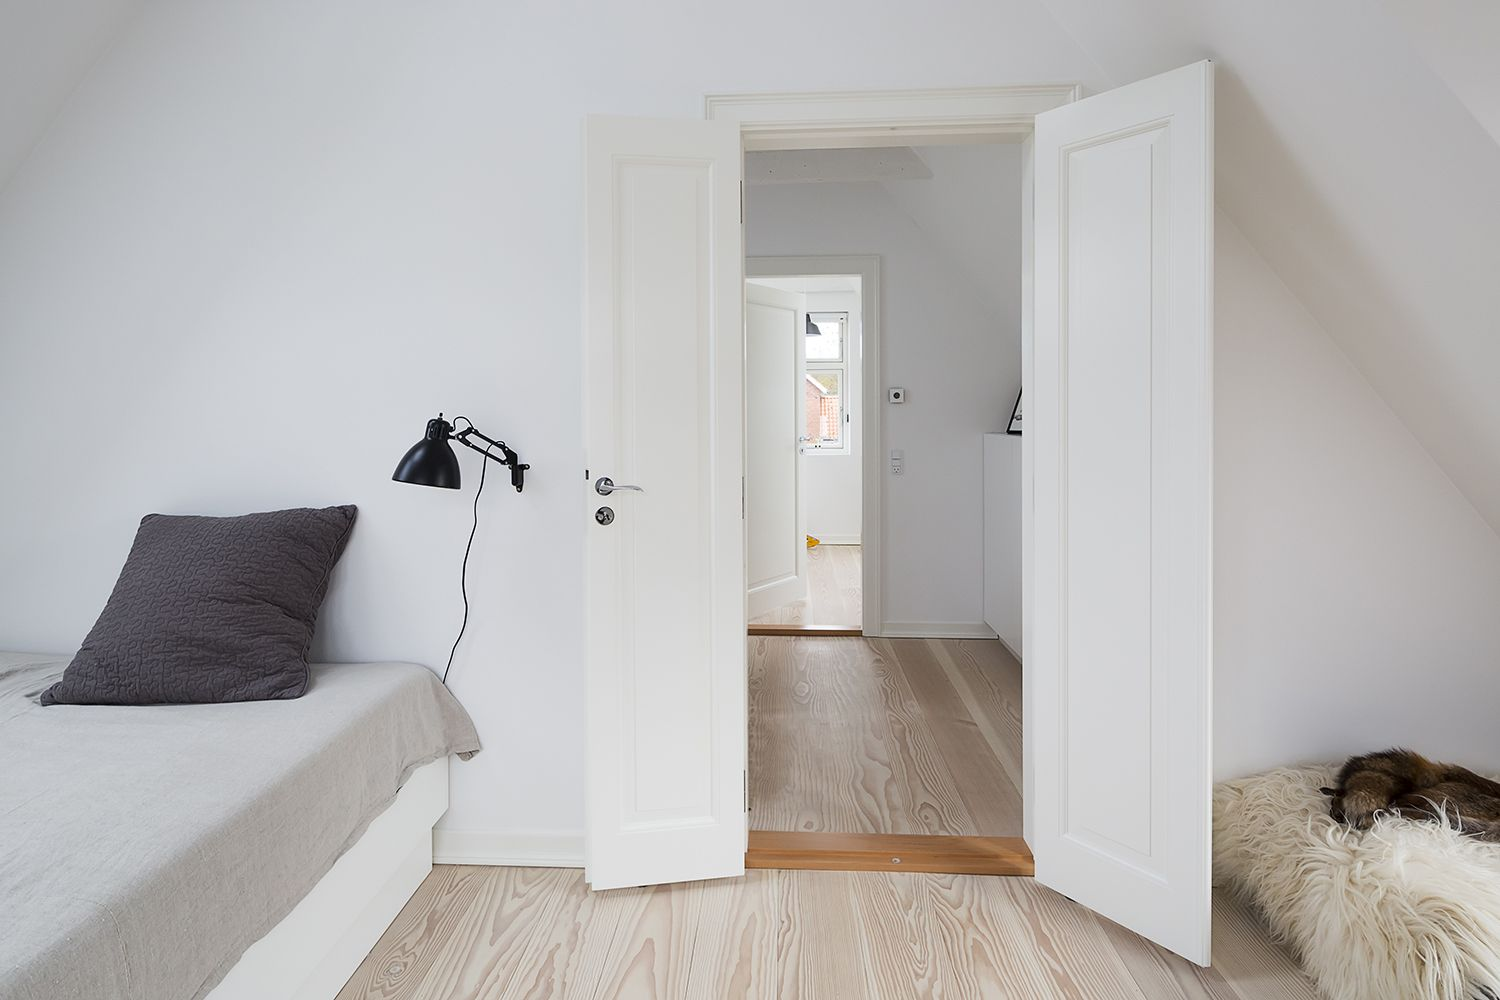 The New White Doors Only Have One Panel Which Creates A Minimalist